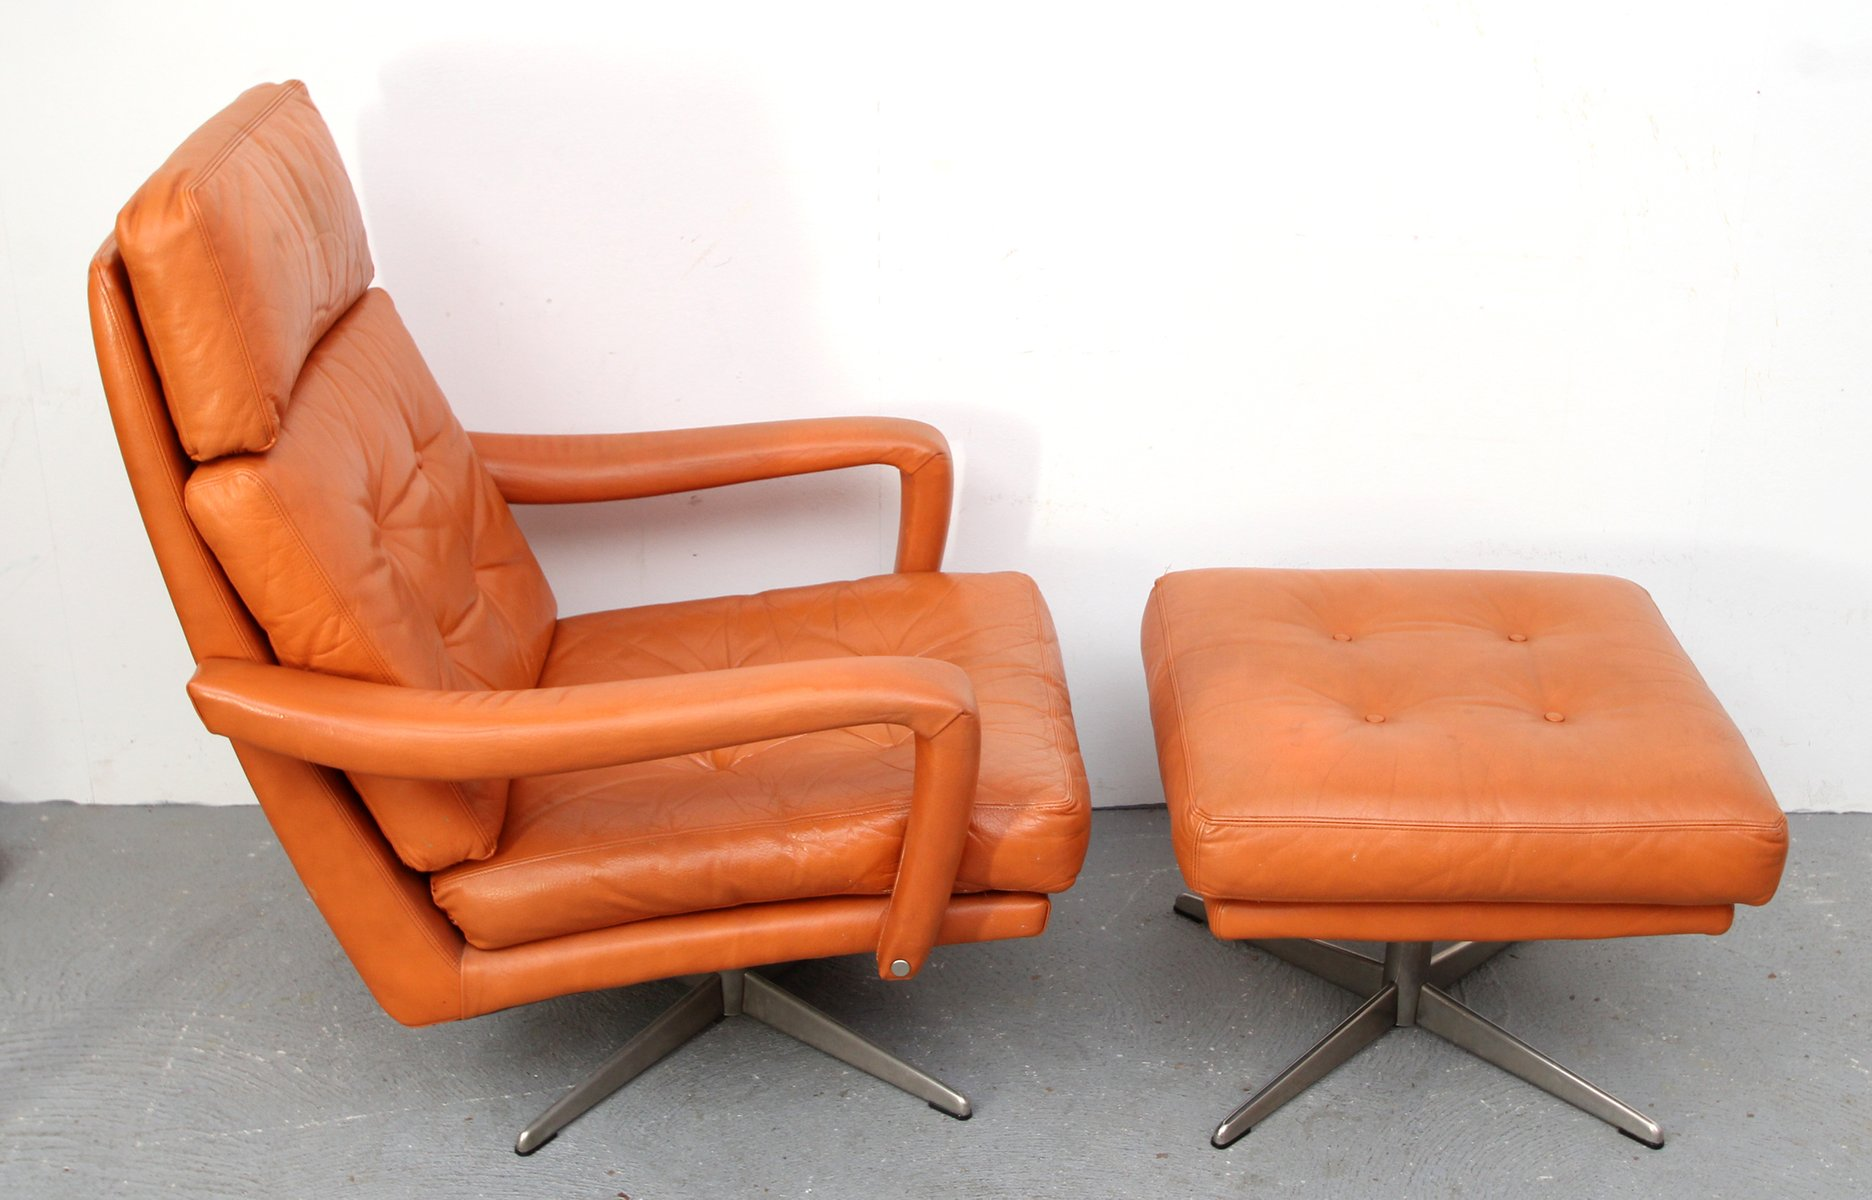 Cognac Leather Lounge Chair & Ottoman 1970s for sale at